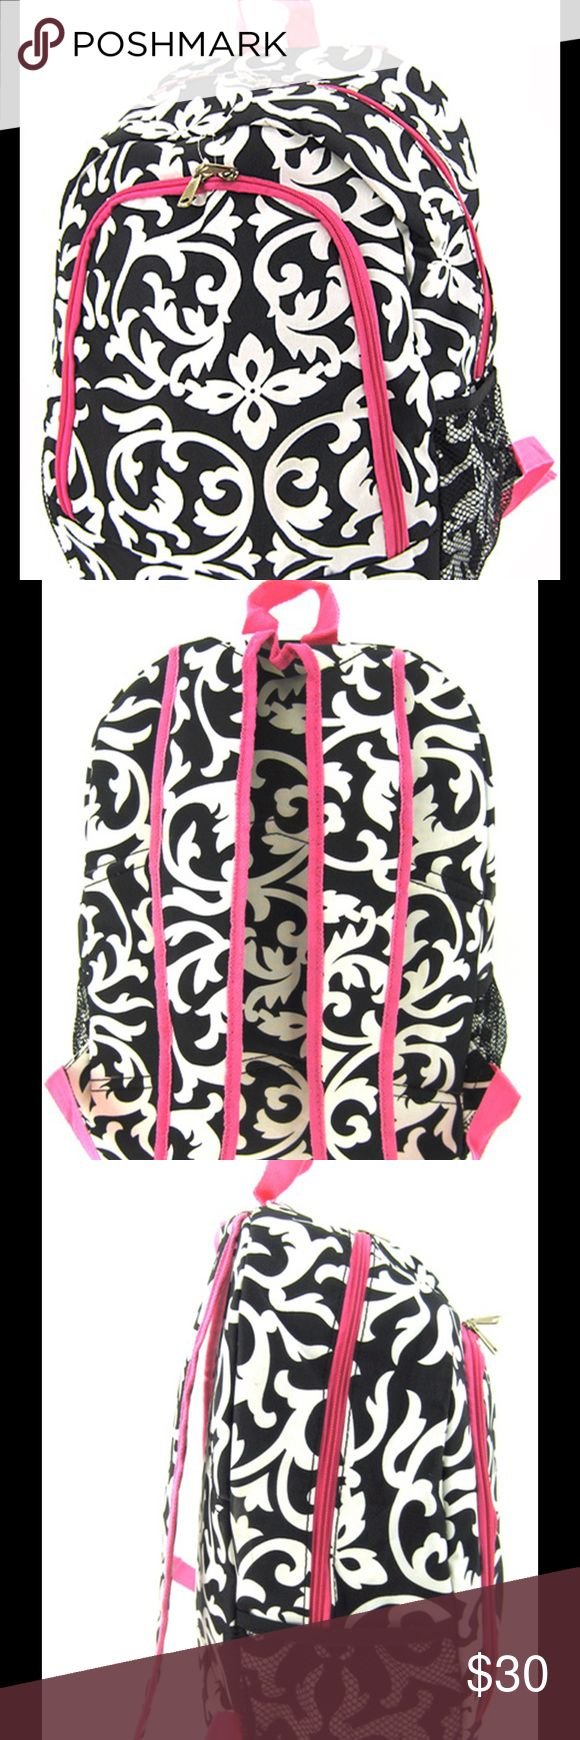 "Damask 16"" Backpack School Dance Diaper Bag Pink This bag is brand new and not used. Check out our closet to see all of our beautiful bags!  Sorry, No Trades.  Size : 12w x 16h x 6d in.  Material : Canvas   * Zipper Closure  * Large Zipper Pocket on Front  * Plenty of Various Sized Pockets Inside  * Two Compartments w/ Front Pocket  * Two Mesh Pockets on Each Side  * Adjustable Shoulder Straps  * Backpack great for School, Diaper Bag, Travel, Gym, Cheer, Gymnastics, Sports Scarlettsbags Bags…"